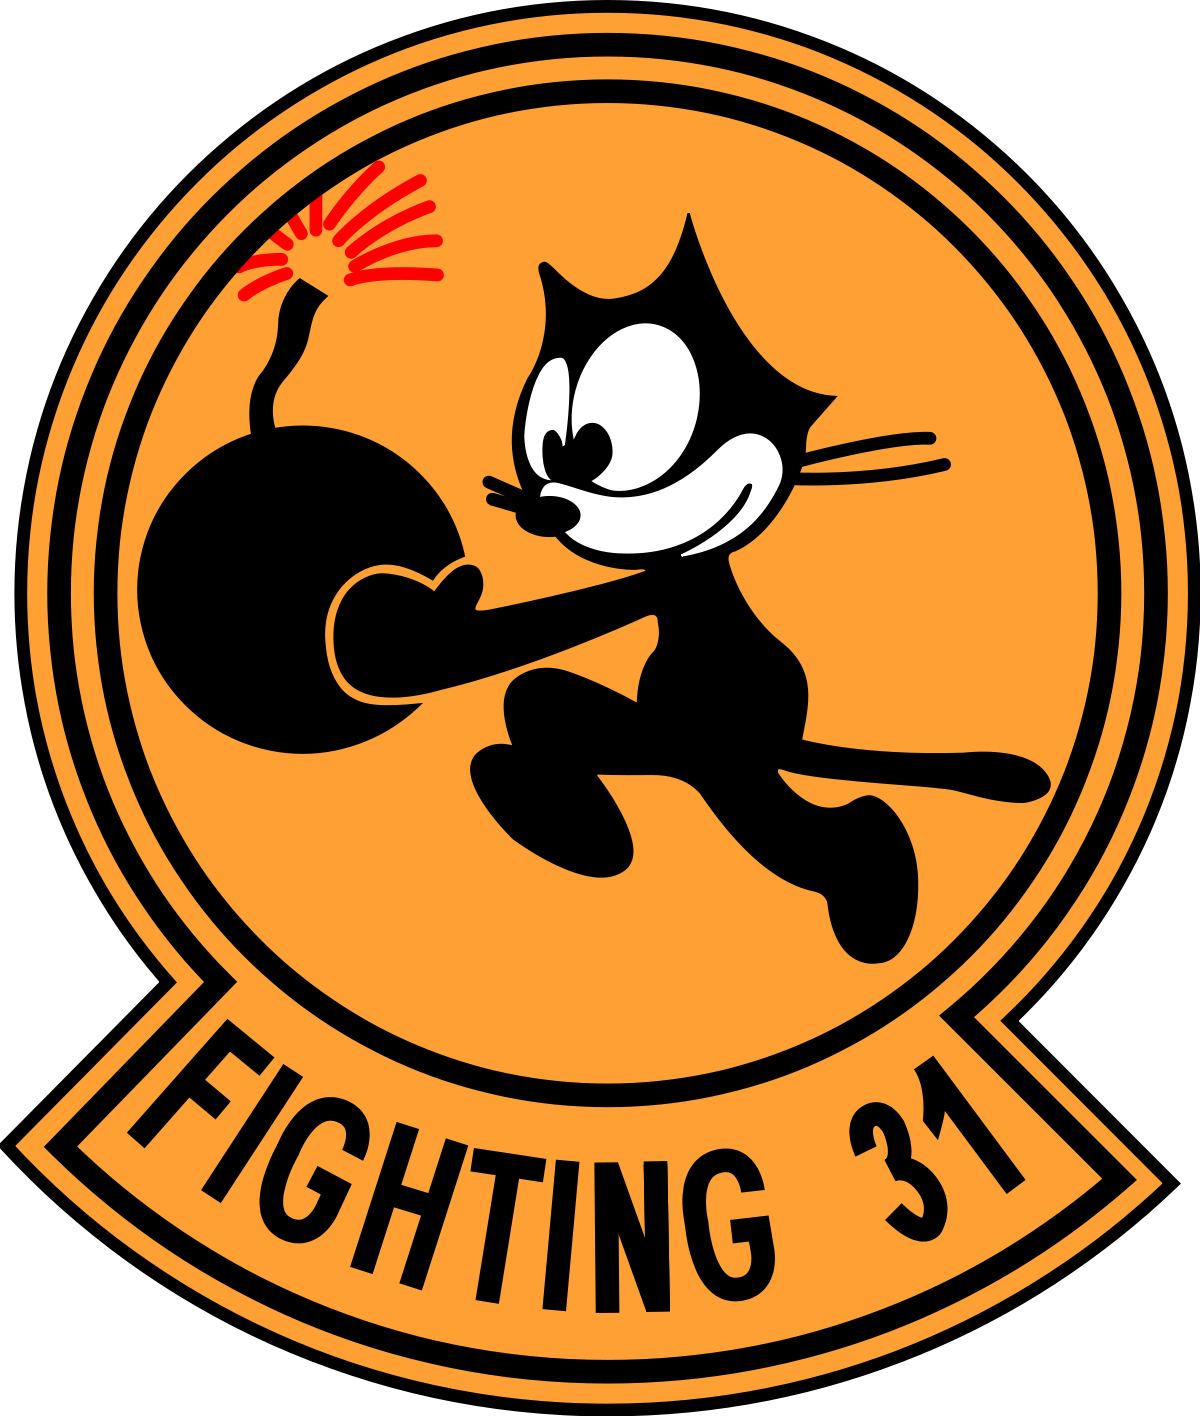 Vfa wikipedia . Catfighting clip vector free download